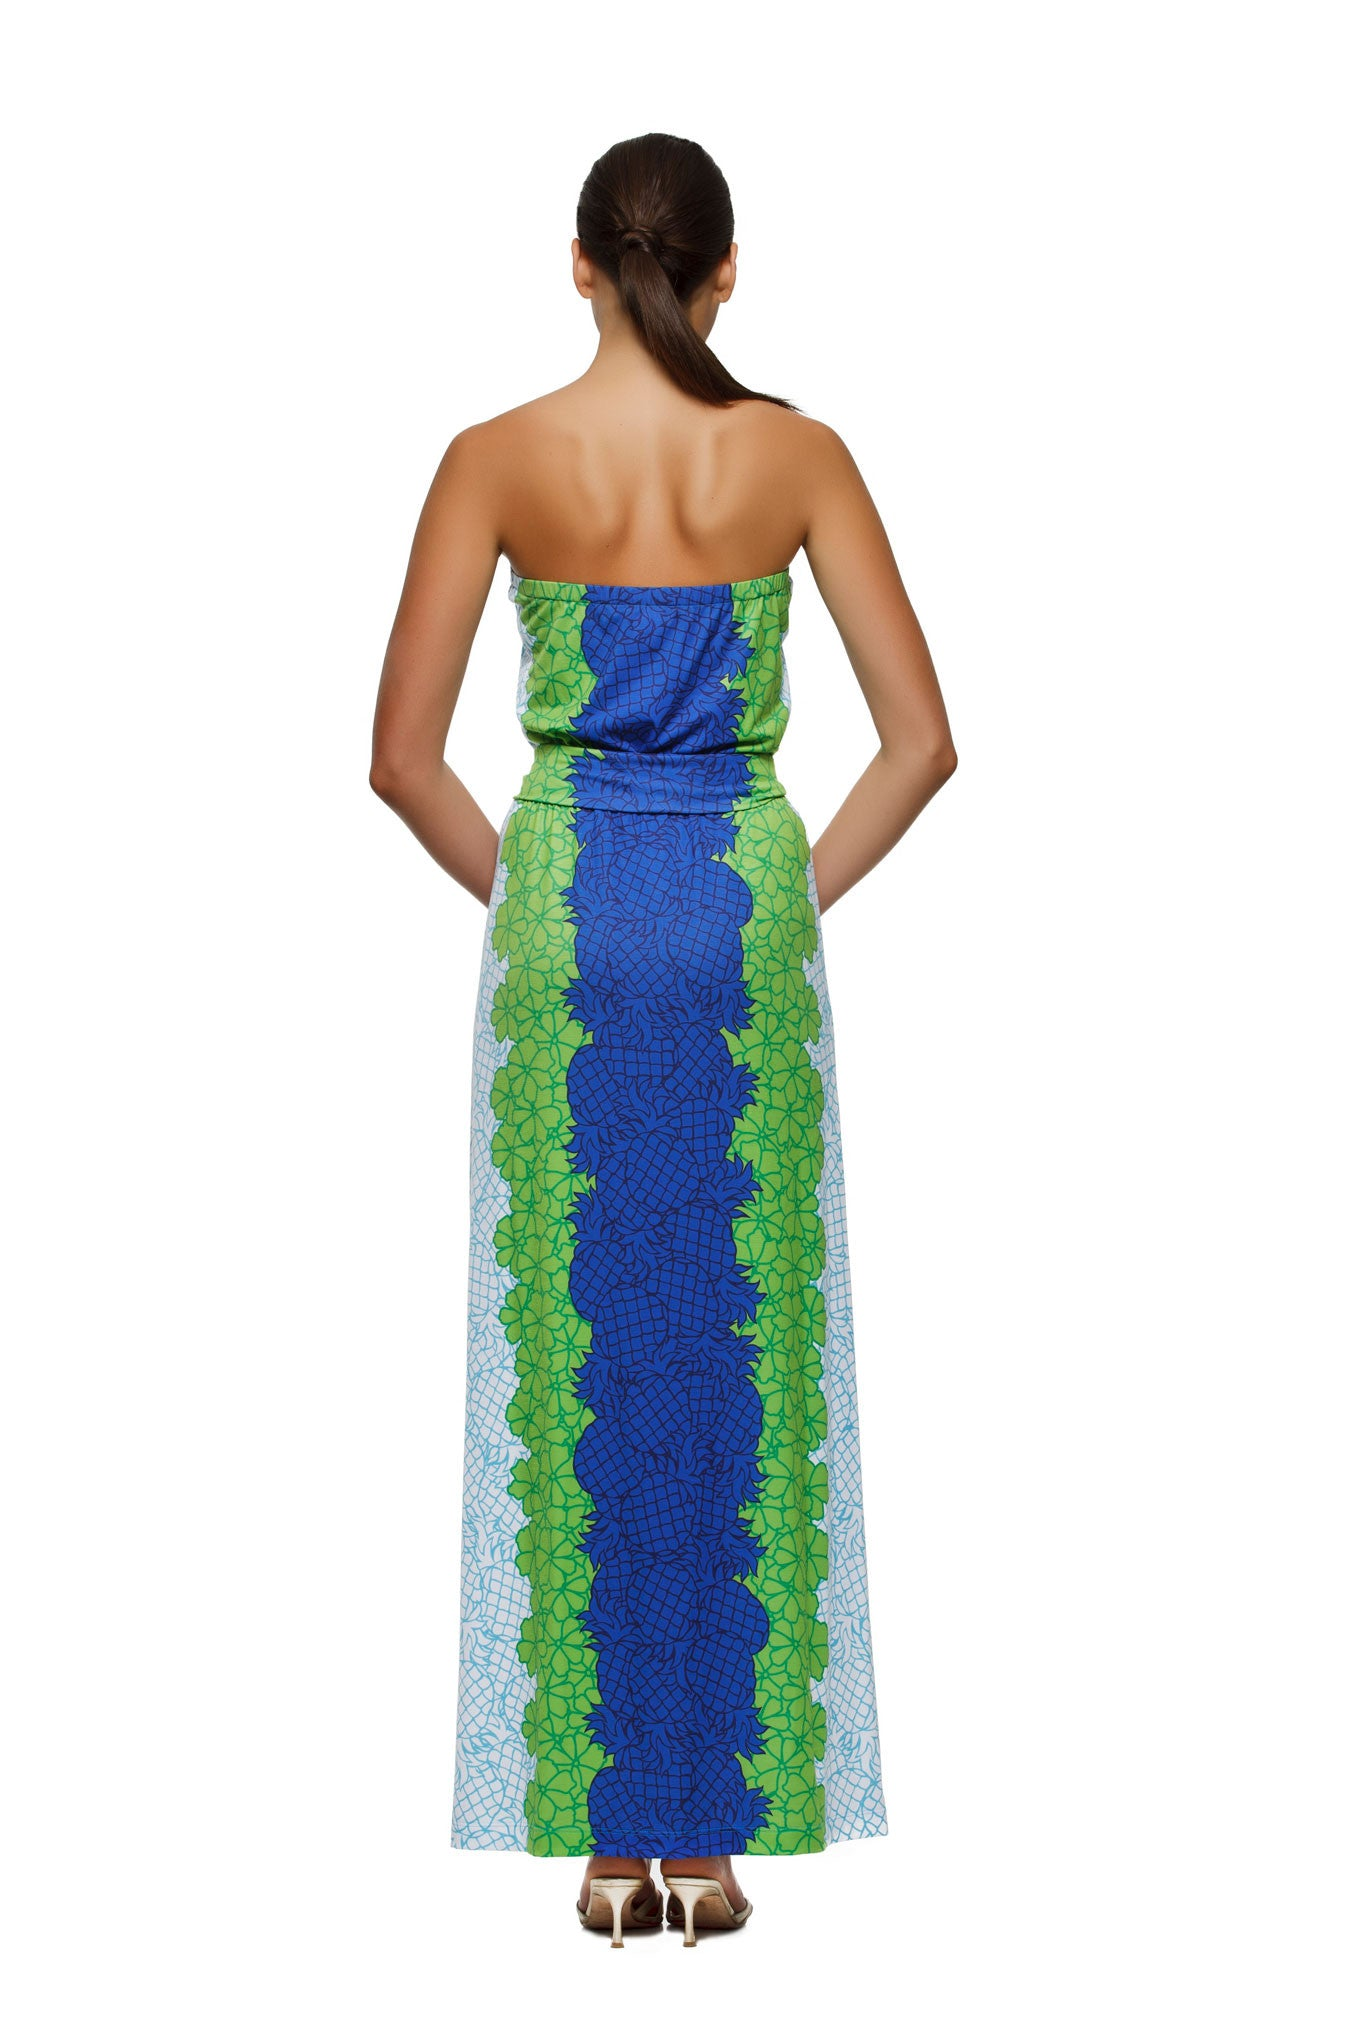 Remy womens strapless maxi dress with matching belt  in pineapple print by Rulon Reed rear view